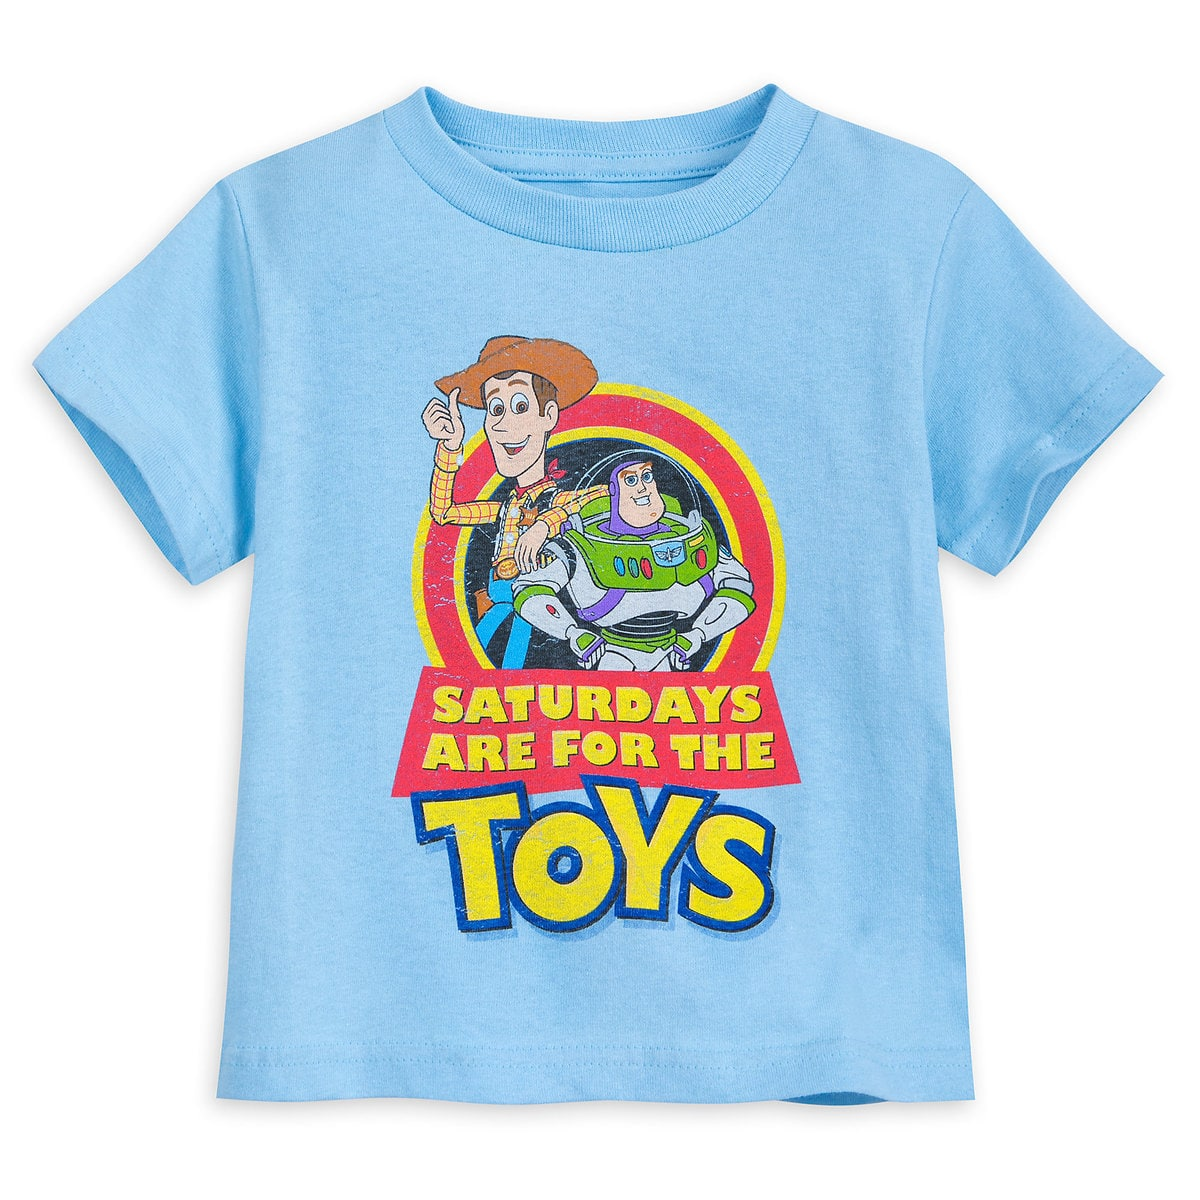 Adorable Toy Story 4 shirts that says Saturdays are for the Toys   Top 25 Disney Gift Ideas for Toddlers featured by top US Disney blogger, Marcie and the Mouse